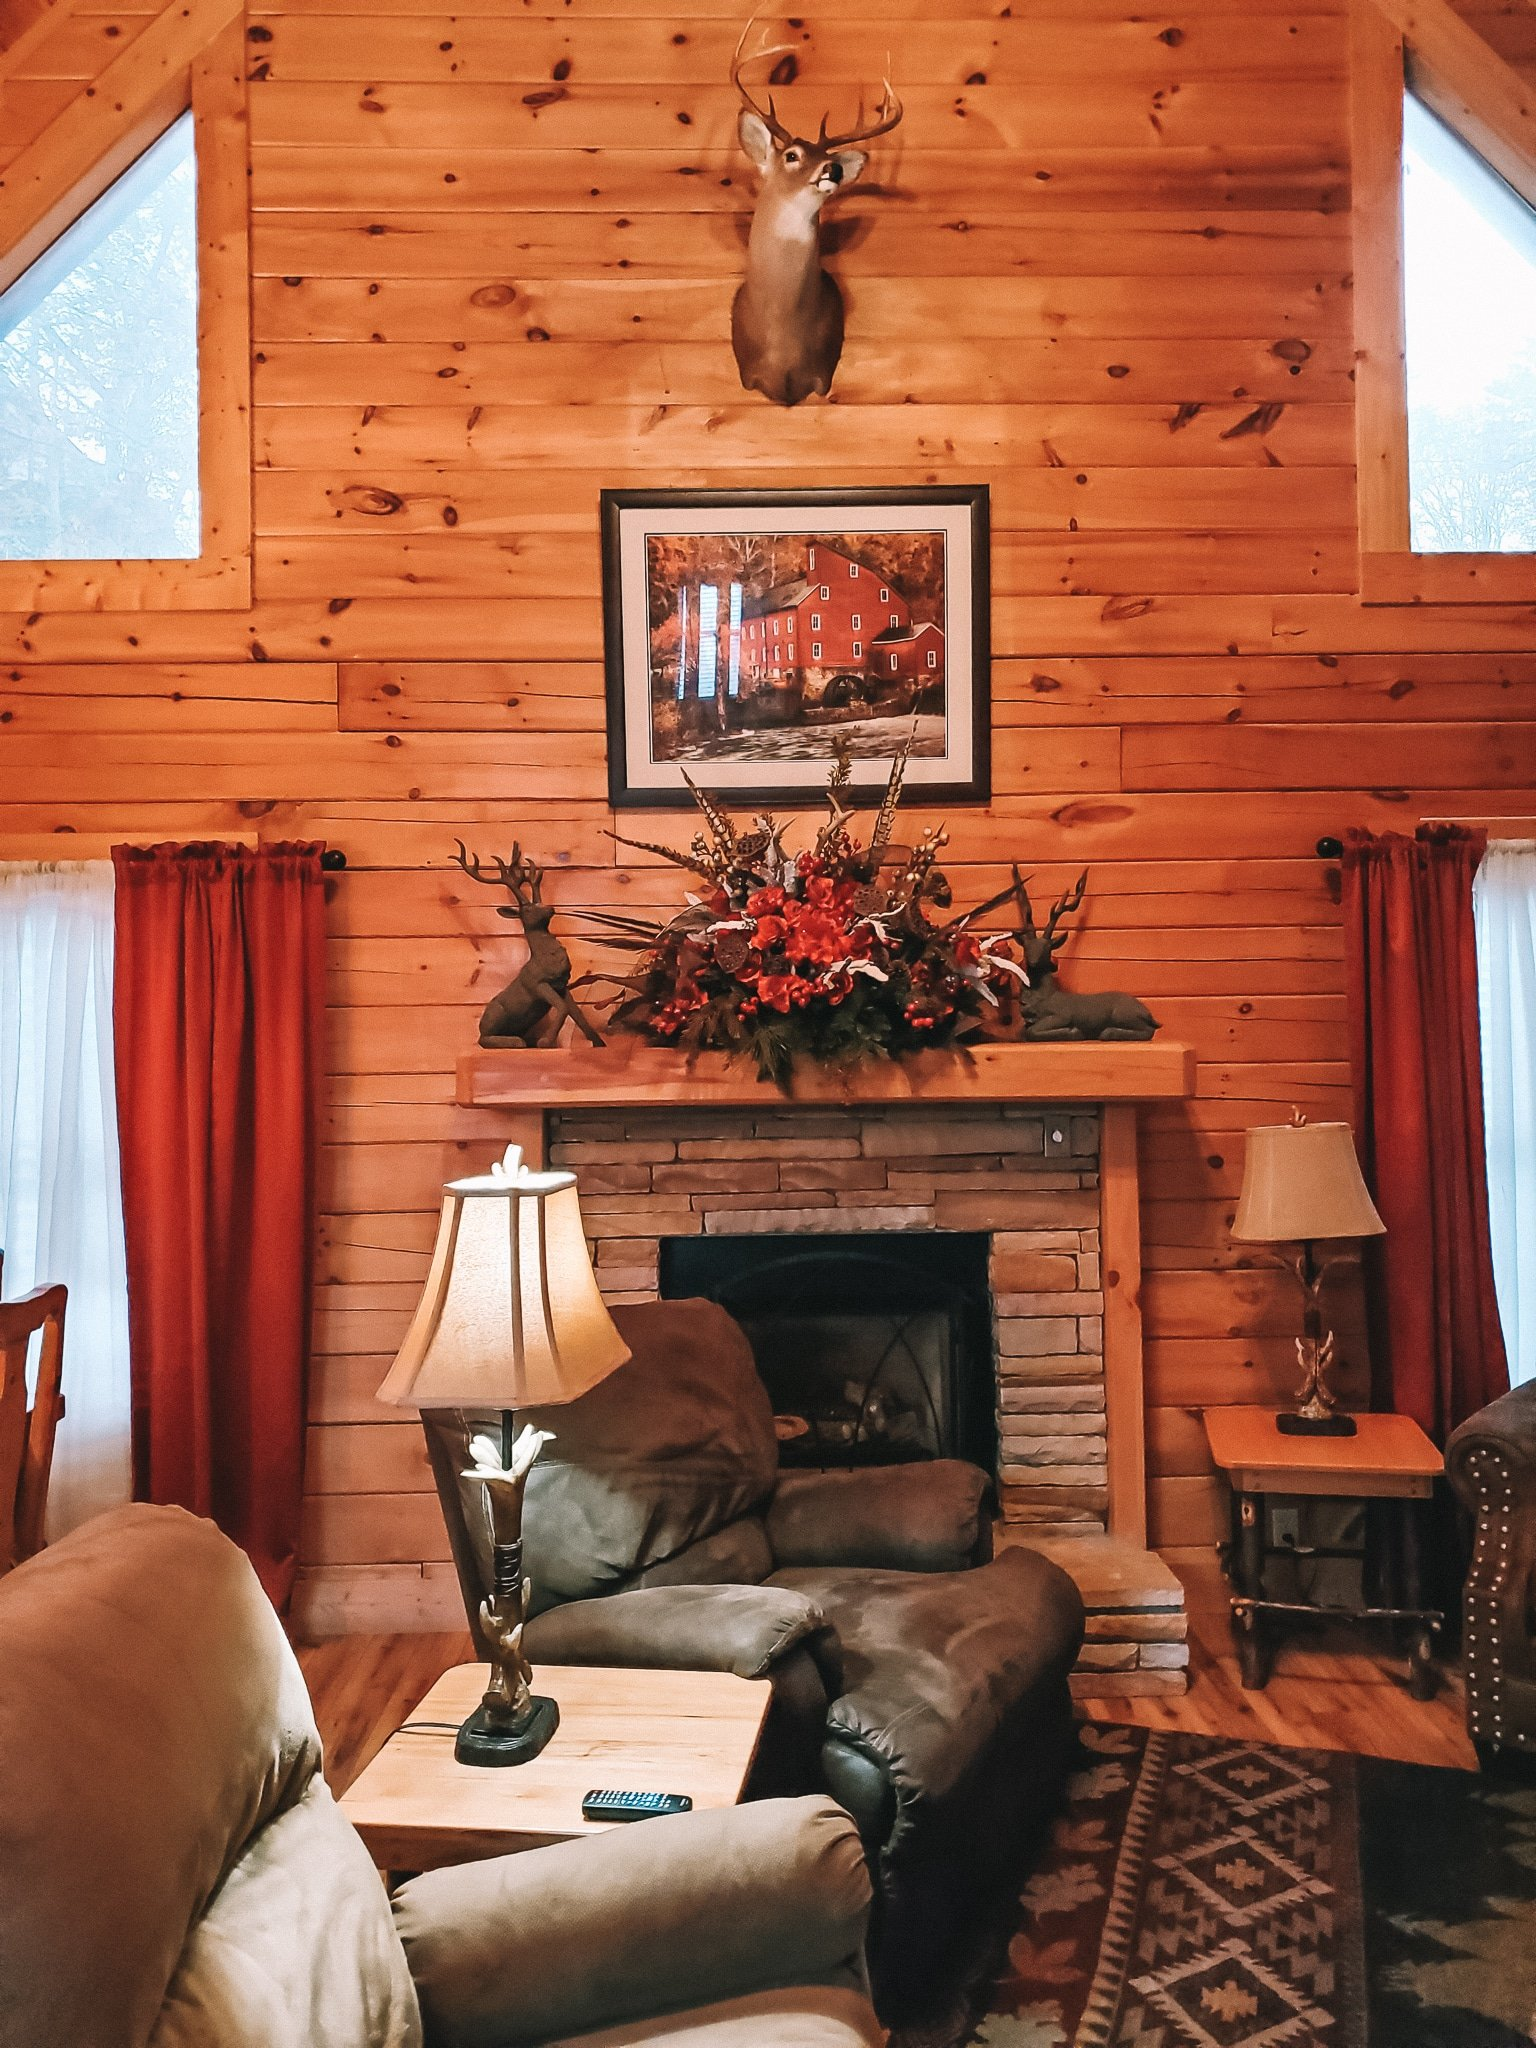 The Mountain Charm Eagles Ridge Resorts Cabin Living Room. The Mountain Charm 3 Bedroom Cabin at Eagles Ridge Resort offers ample space and luxury. The perfect place to stay during a family vacation to Pigeon Forge, TN.